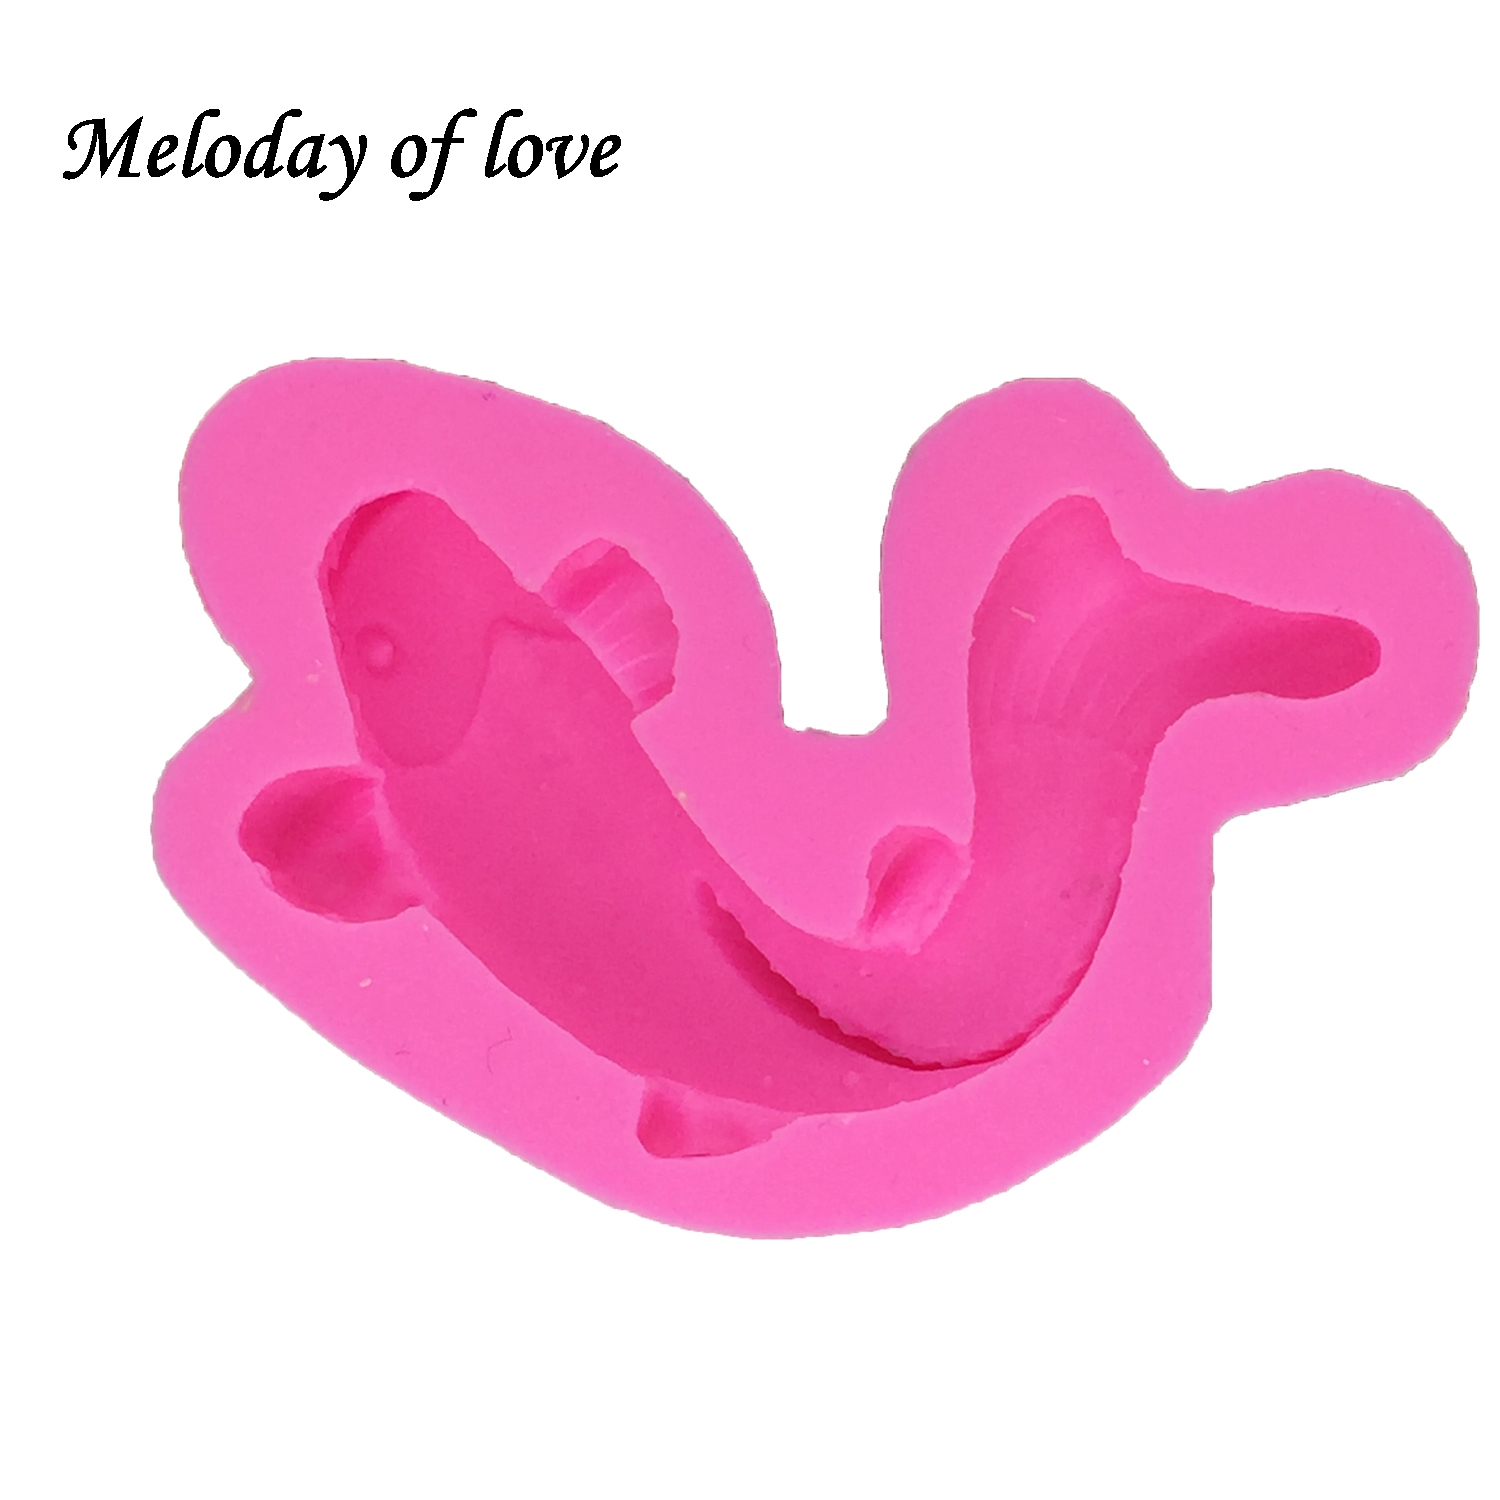 DECO MOLD 7,Sugarcraft Moulds Polymer Clay Cake Border Mould Soap Molds Resin Candy Chocolate Cake Decorating Tools